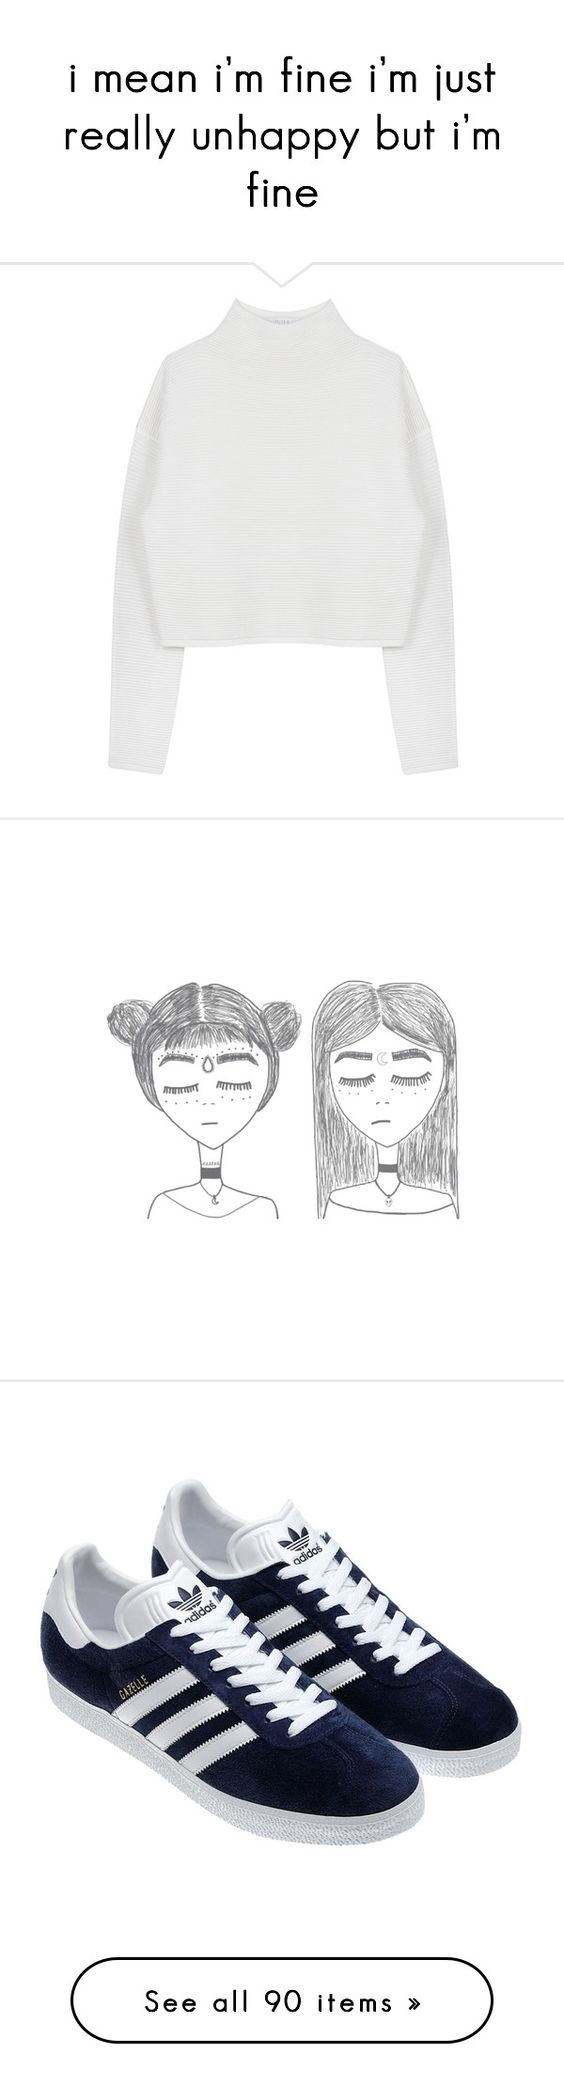 """""""i mean i'm fine i'm just really unhappy but i'm fine"""" by alienbabs ❤ liked on Polyvore featuring tops, sweaters, white top, dion lee, fillers, drawings, sketches, doodles, + drawings and scribble"""